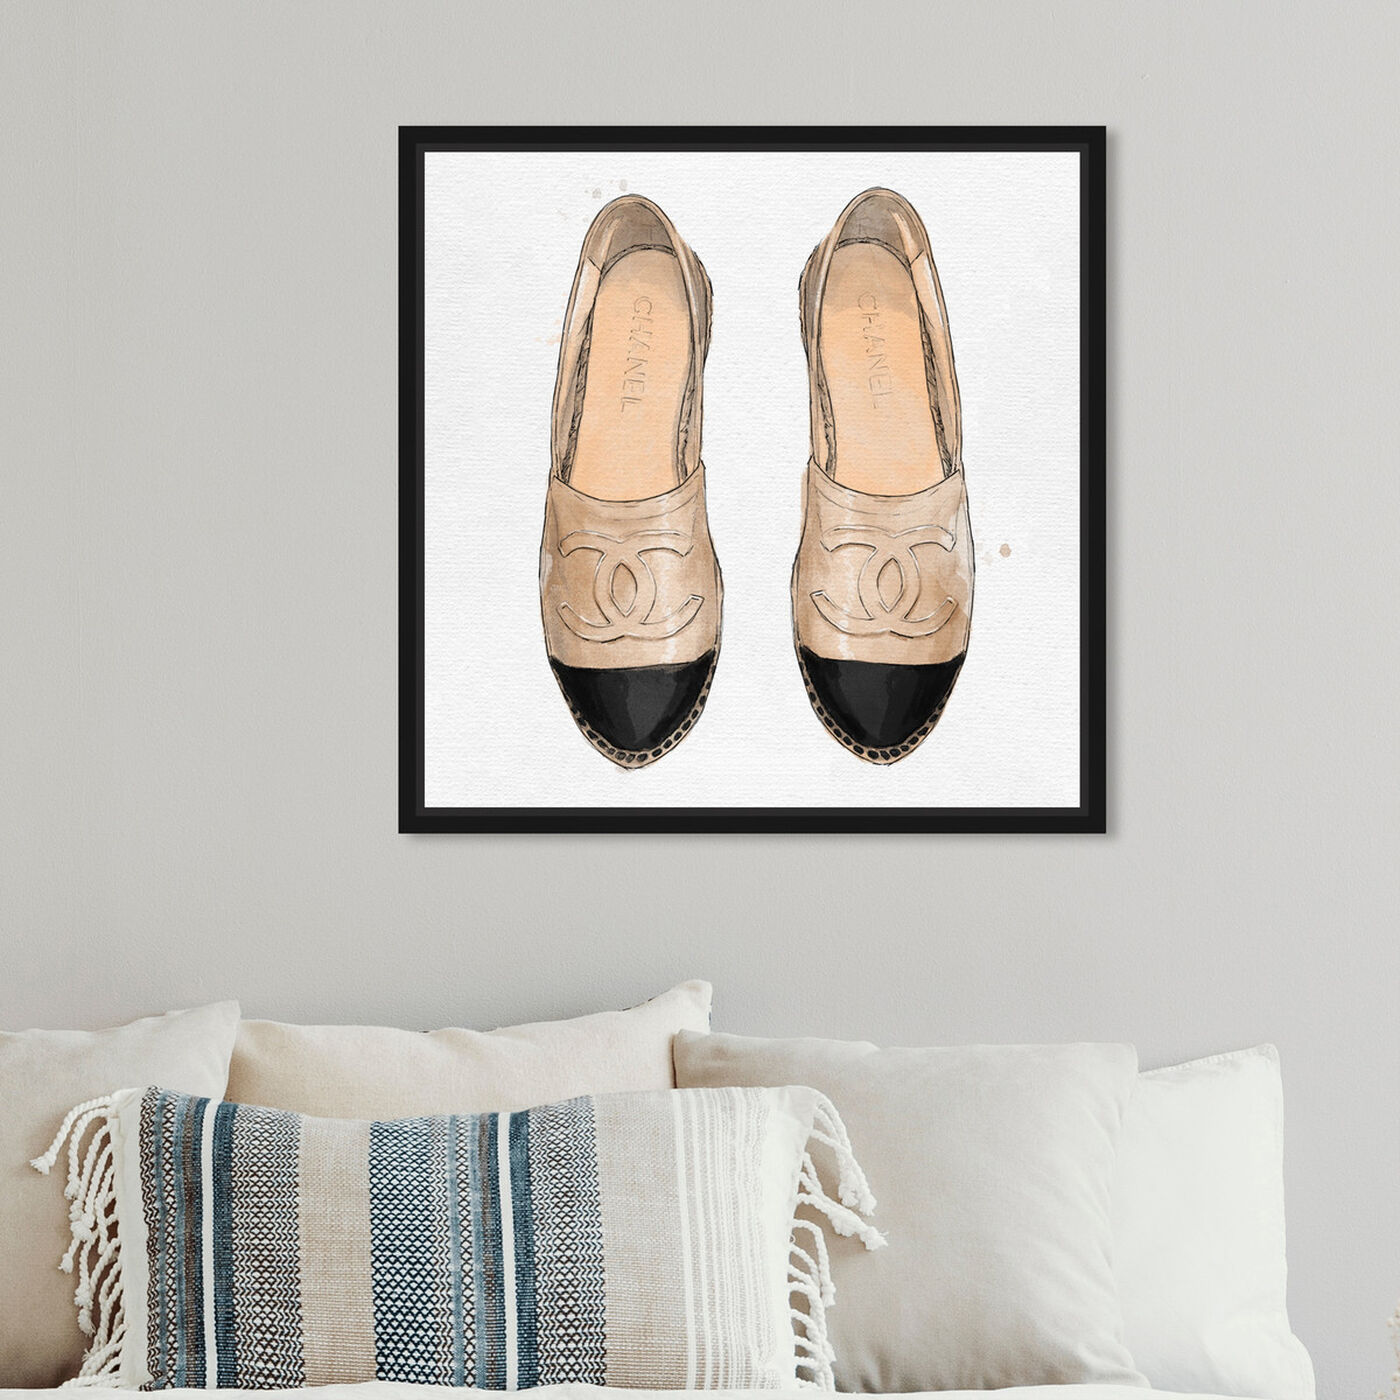 Hanging view of Lady Slippers featuring fashion and glam and shoes art.